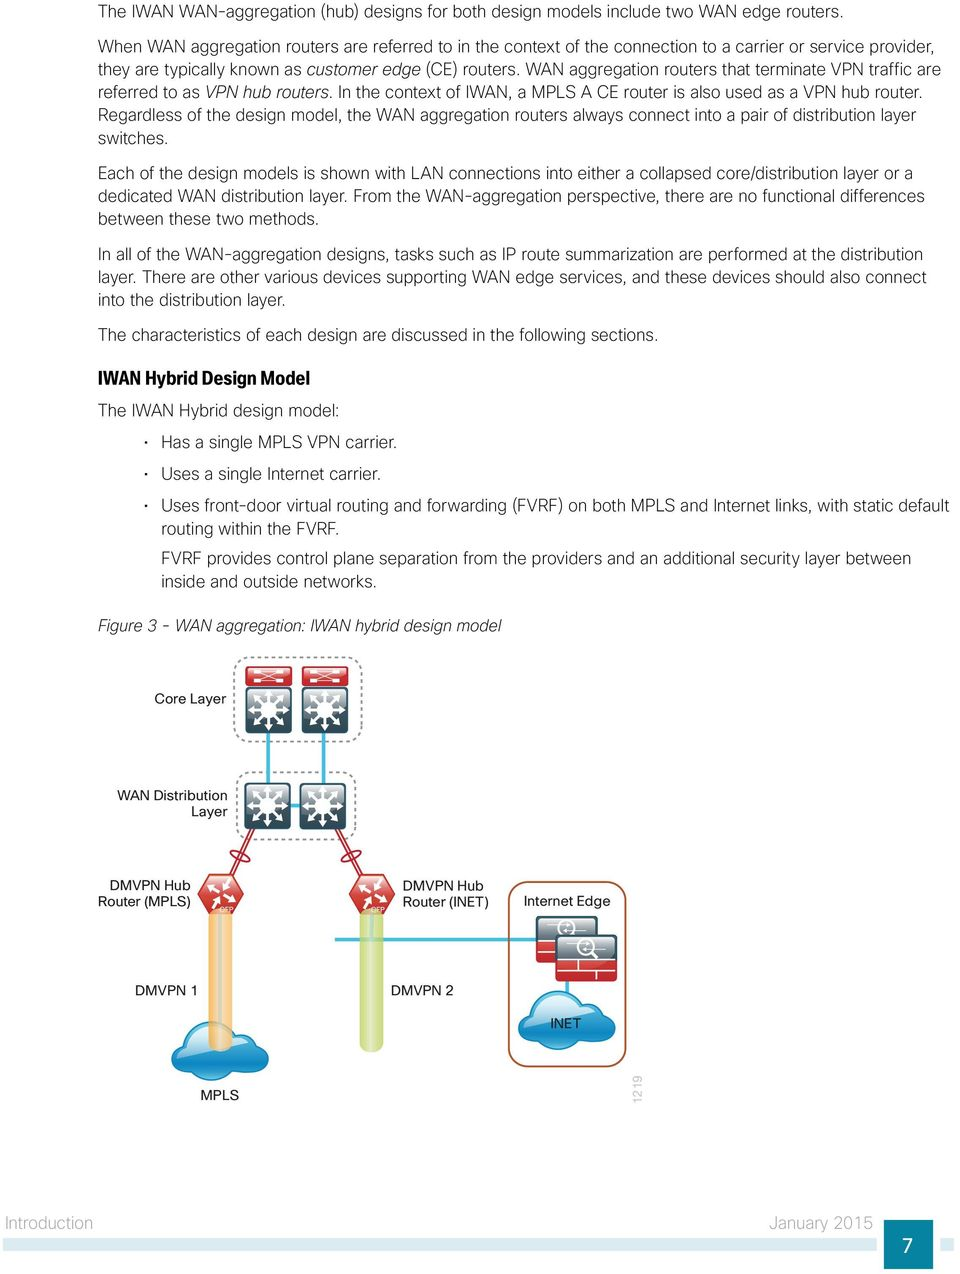 WAN aggregation routers that terminate VPN traffic are referred to as VPN hub routers. In the context of IWAN, a MPLS A CE router is also used as a VPN hub router.